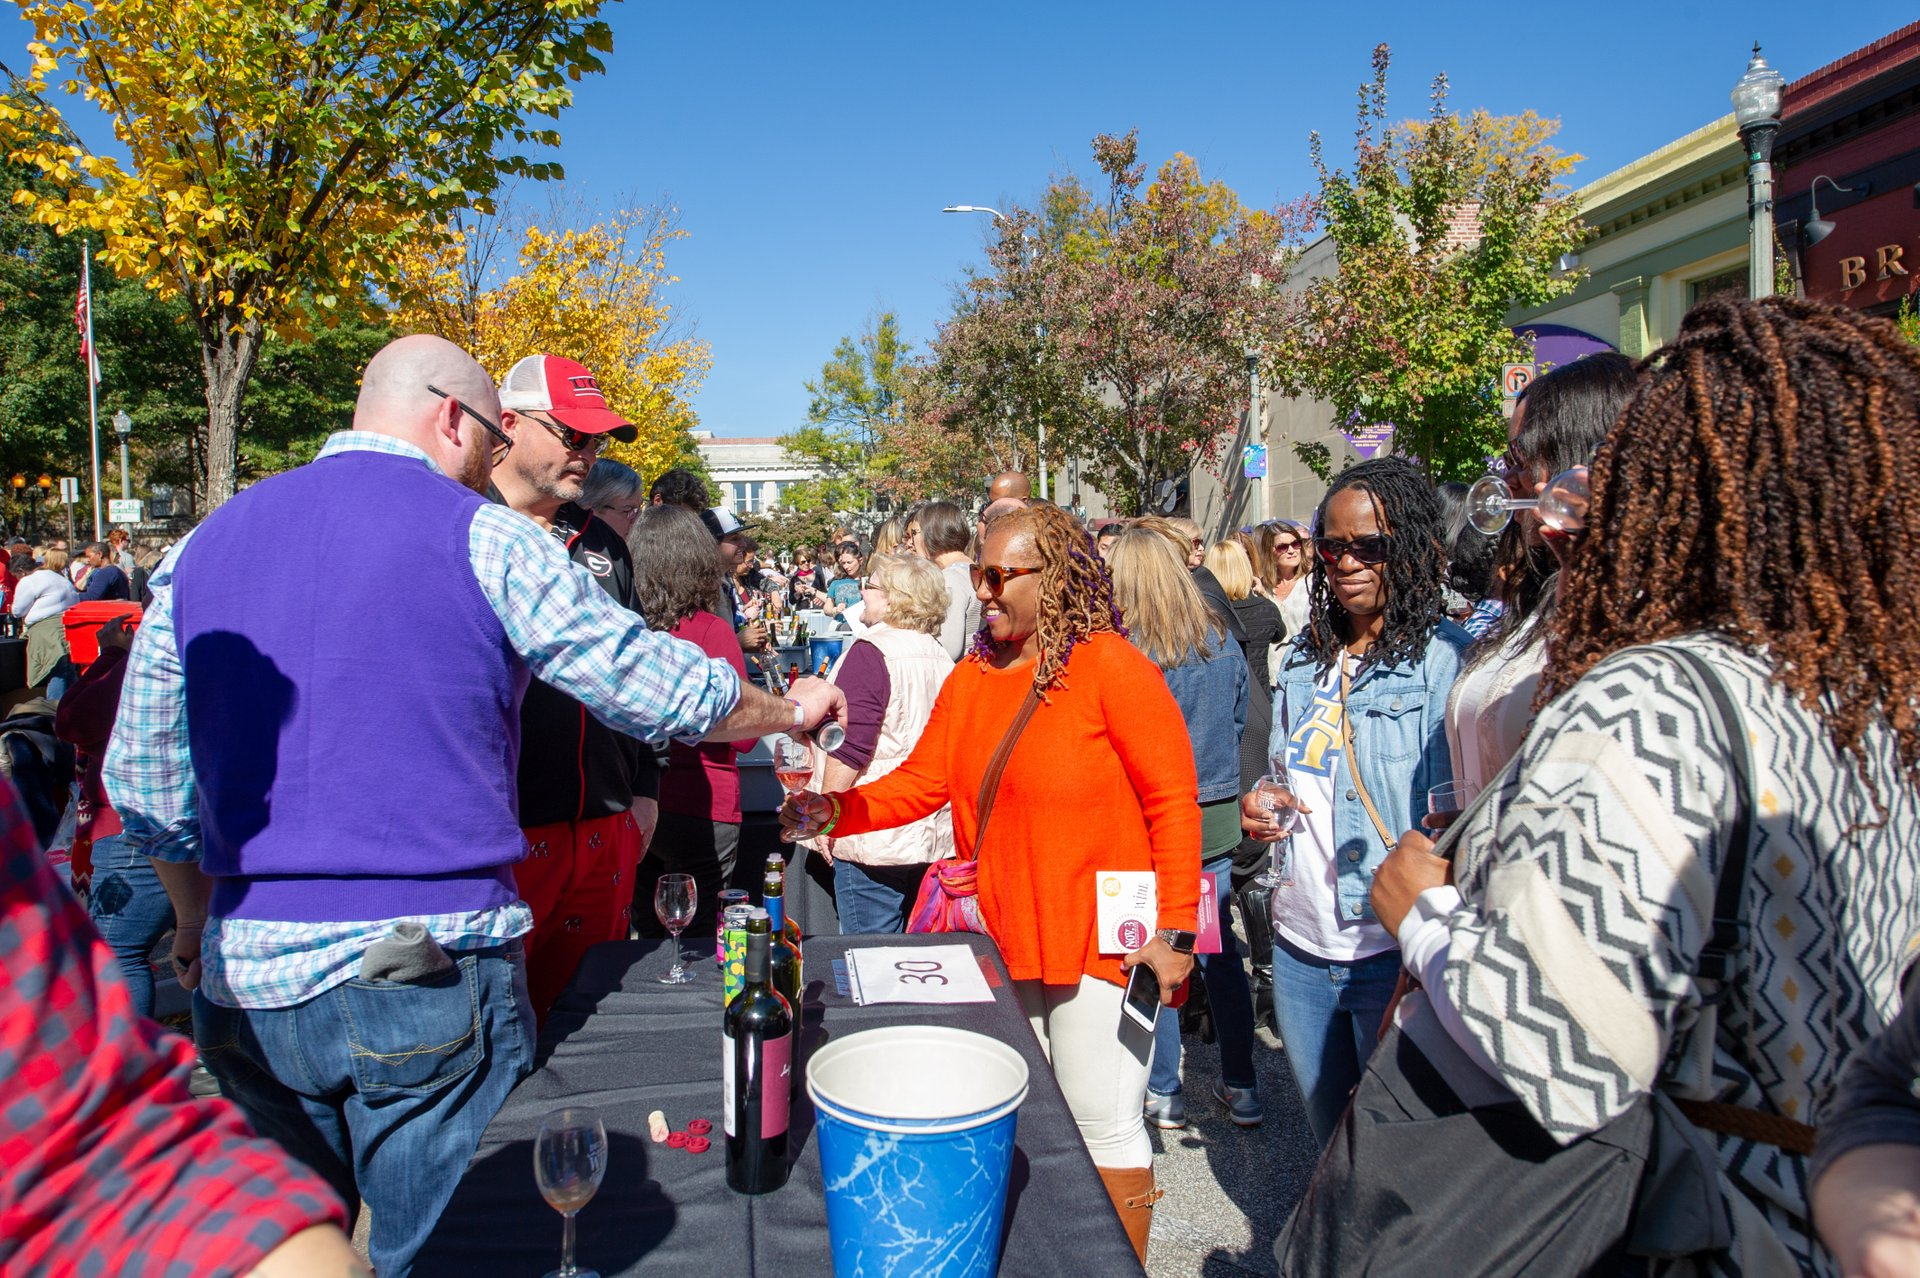 Decatur Wine Festival in Atlanta - Best Season 2020